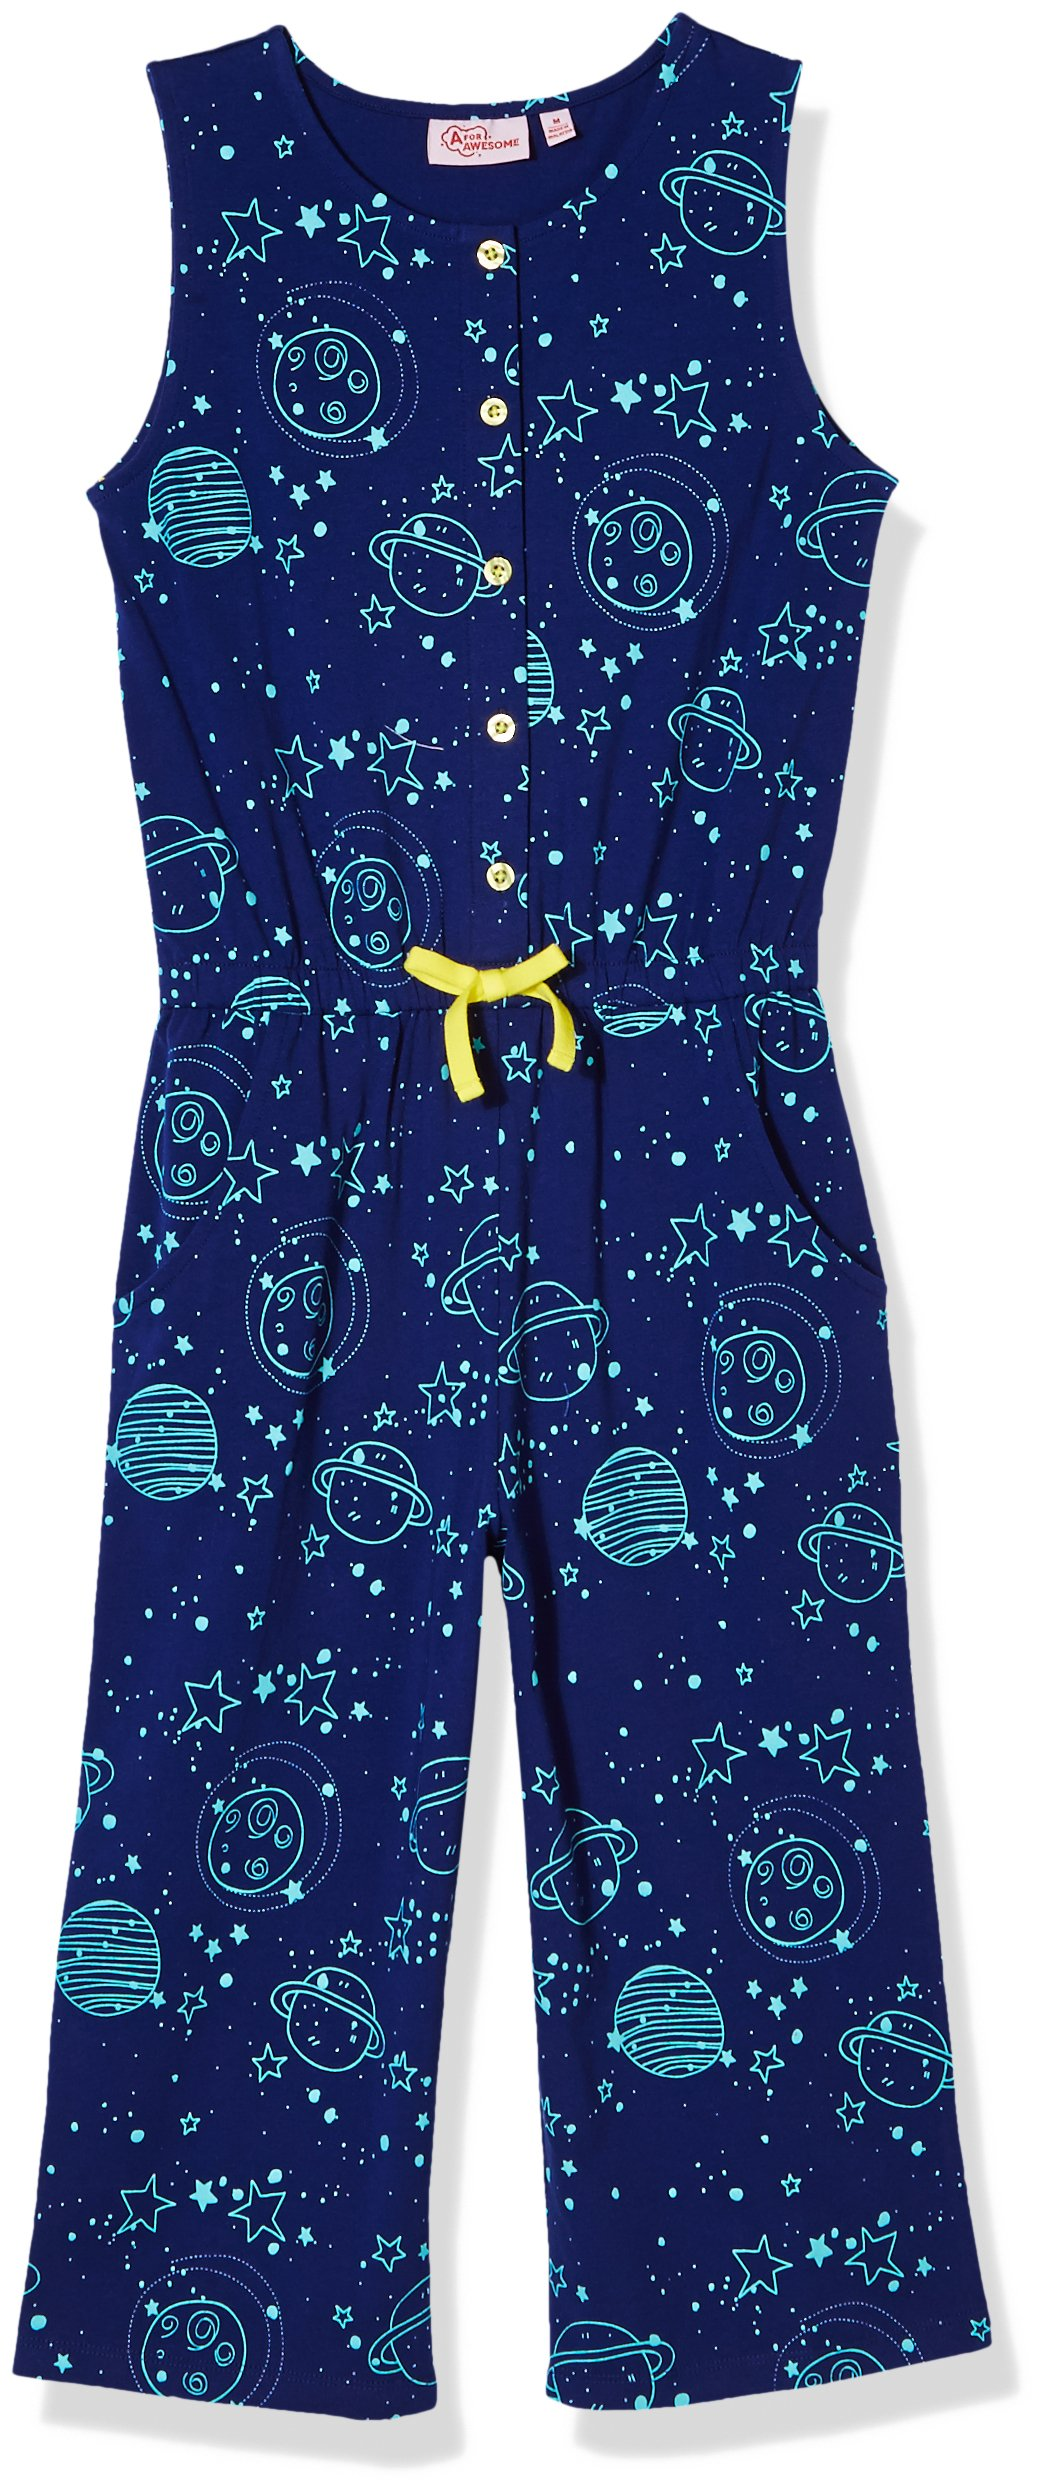 A for Awesome Girls Wide Leg Printed Sleeveless Cotton Jersey Jumpsuit with Sleeveless Small Girls Space AOP